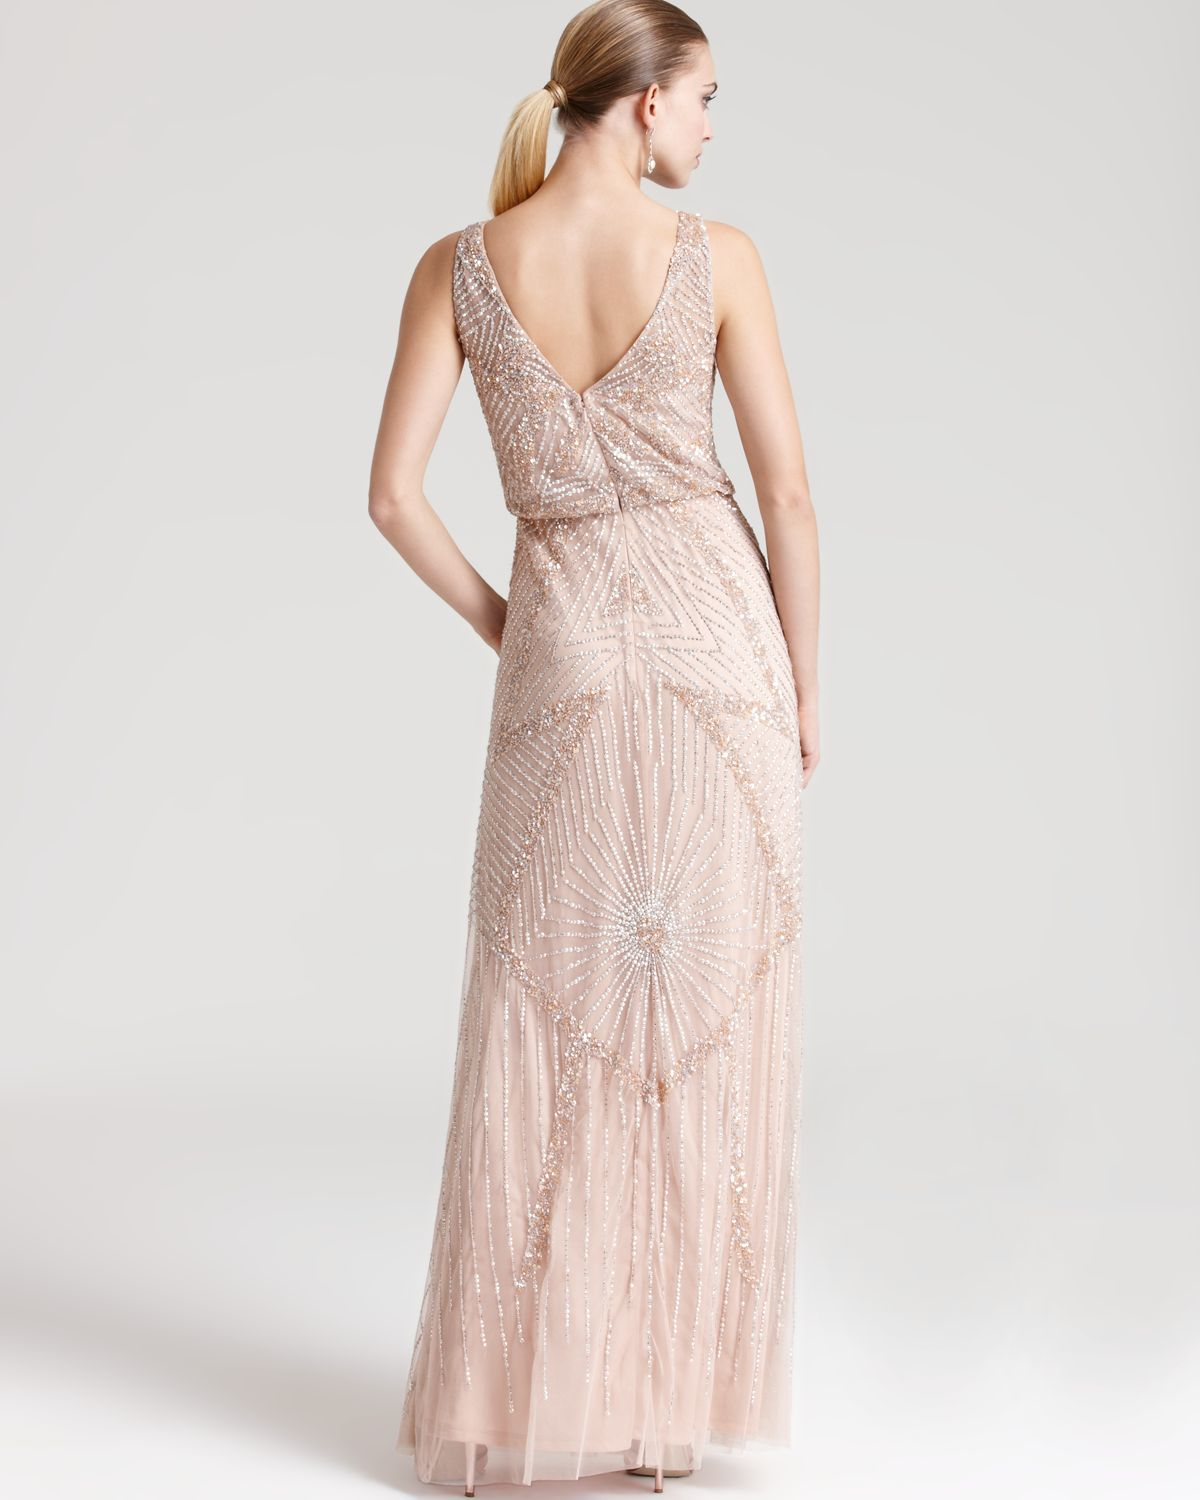 Lyst - Aidan Mattox Beaded Gown - Sleeveless Cinched Waist in Pink